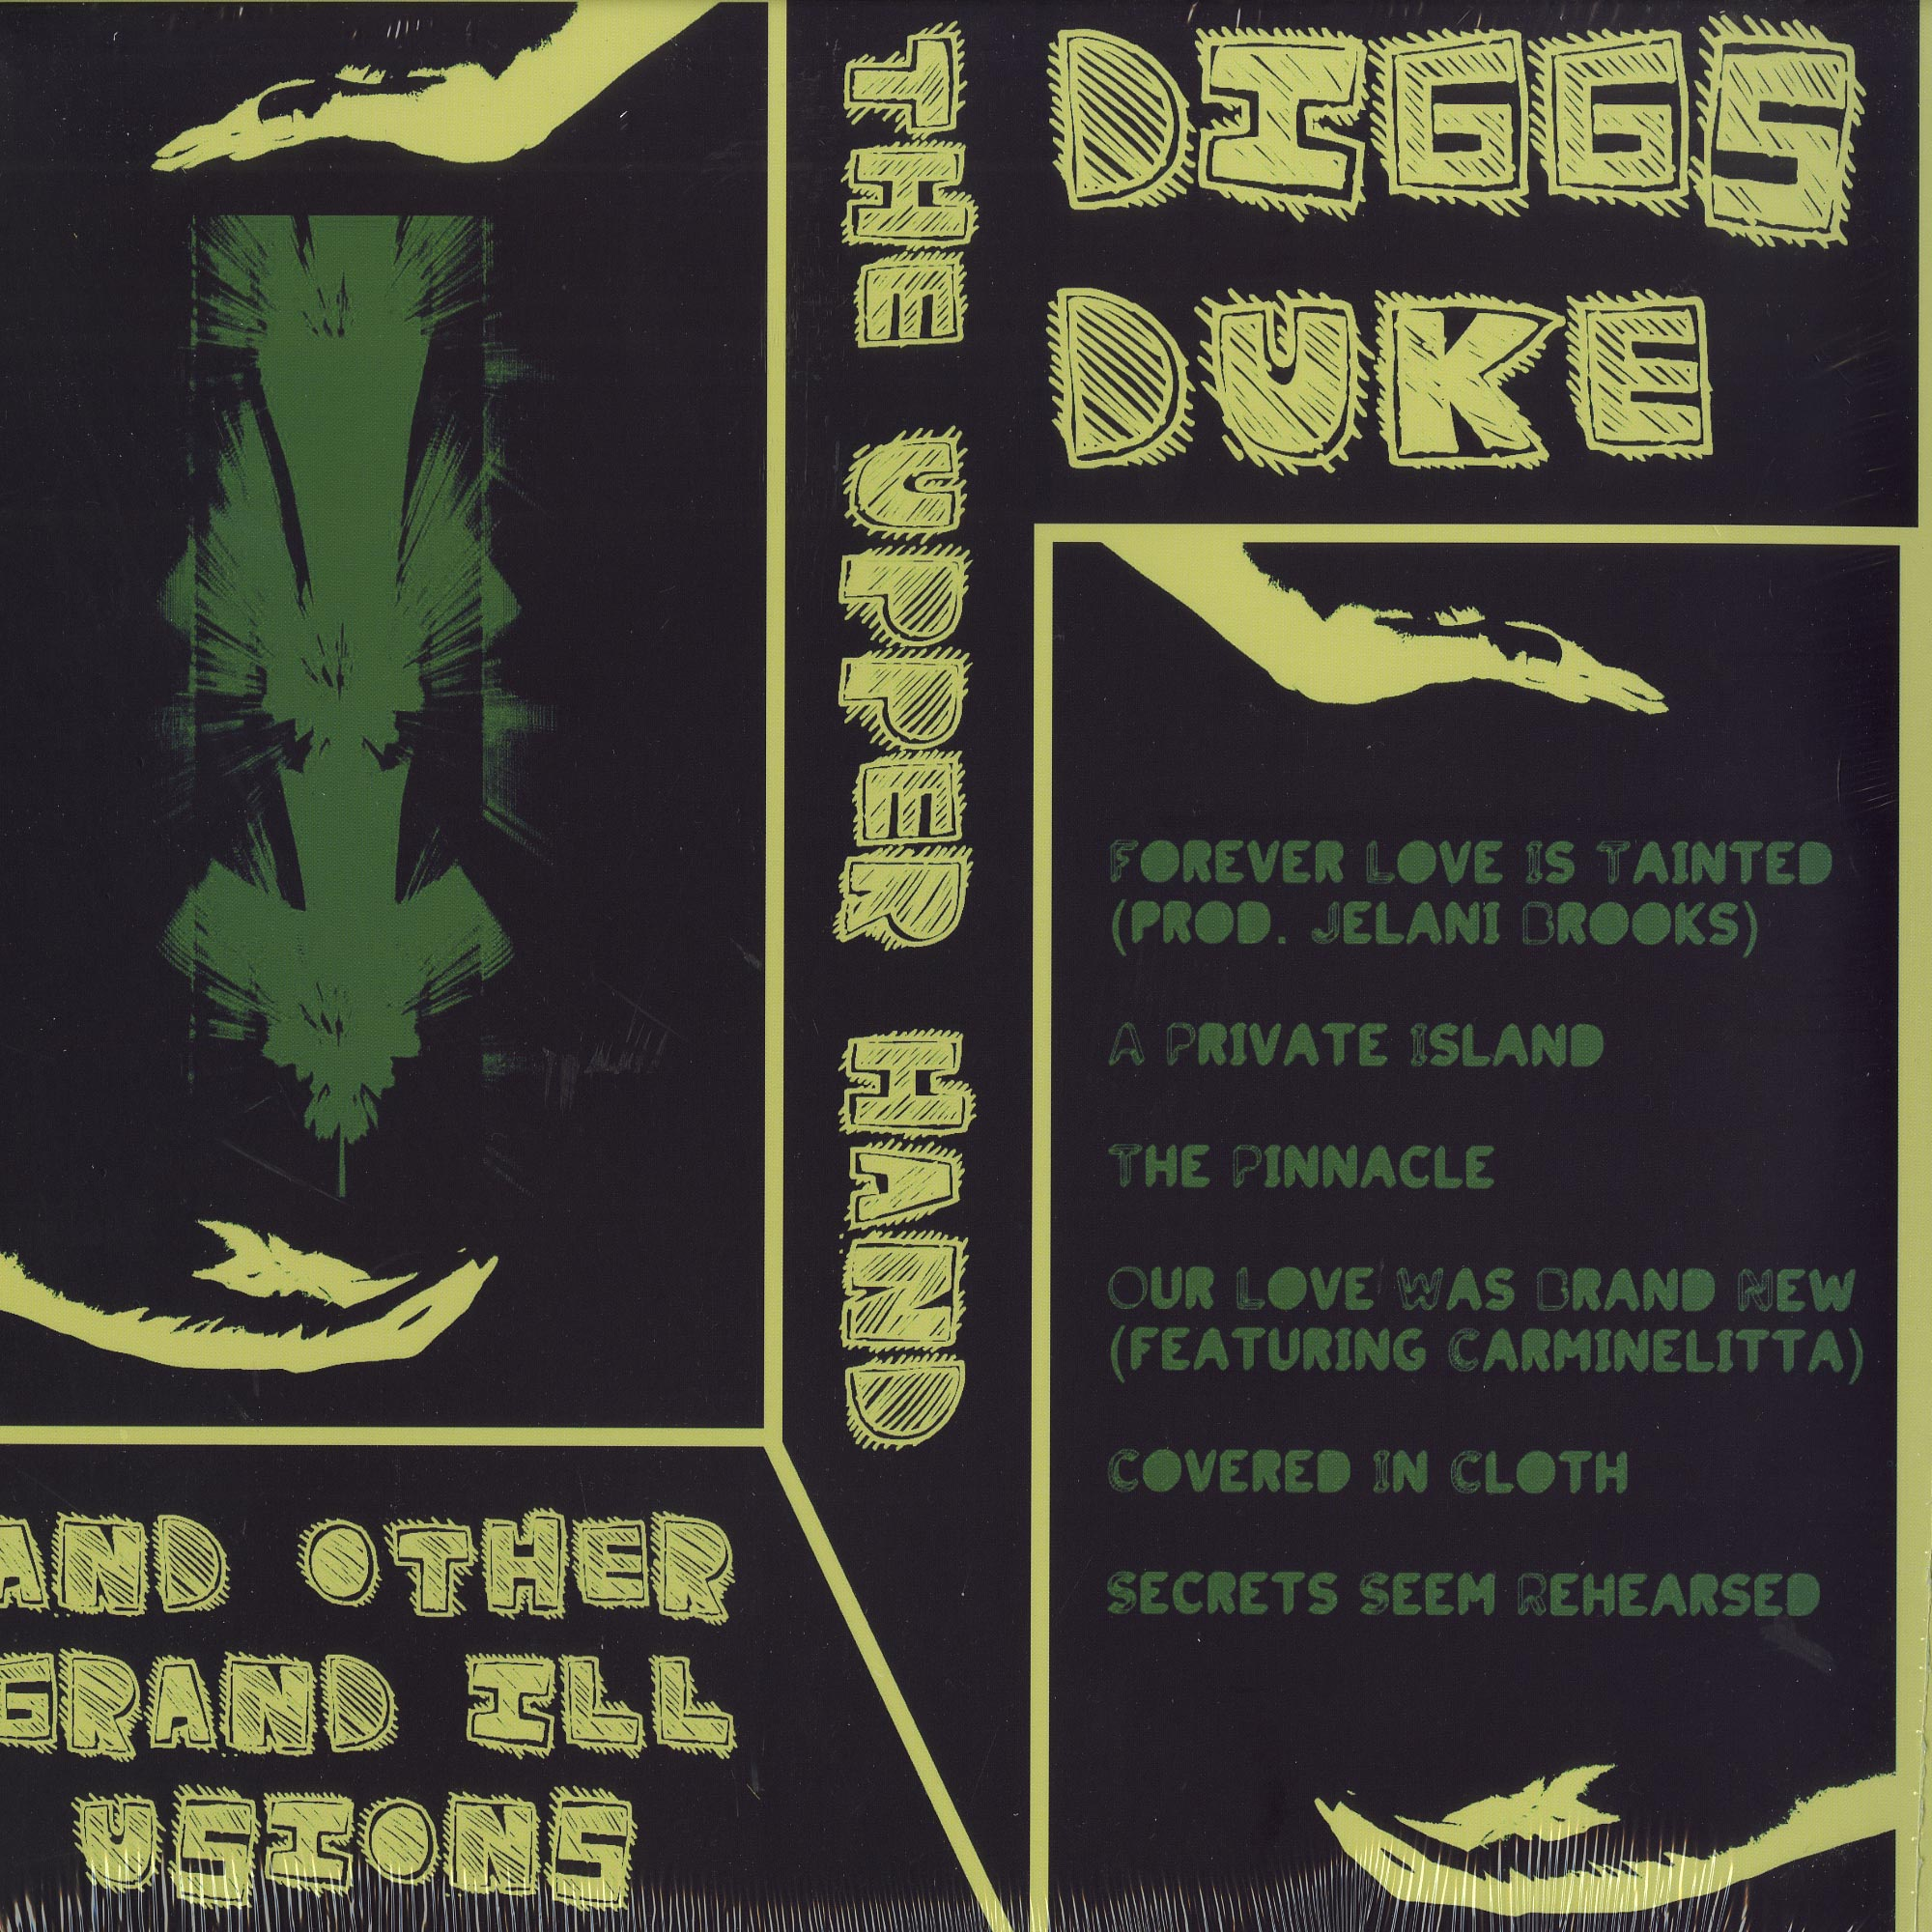 Diggs Duke - THE UPPER HAND AND OTHER GRAND ILLUSIONS